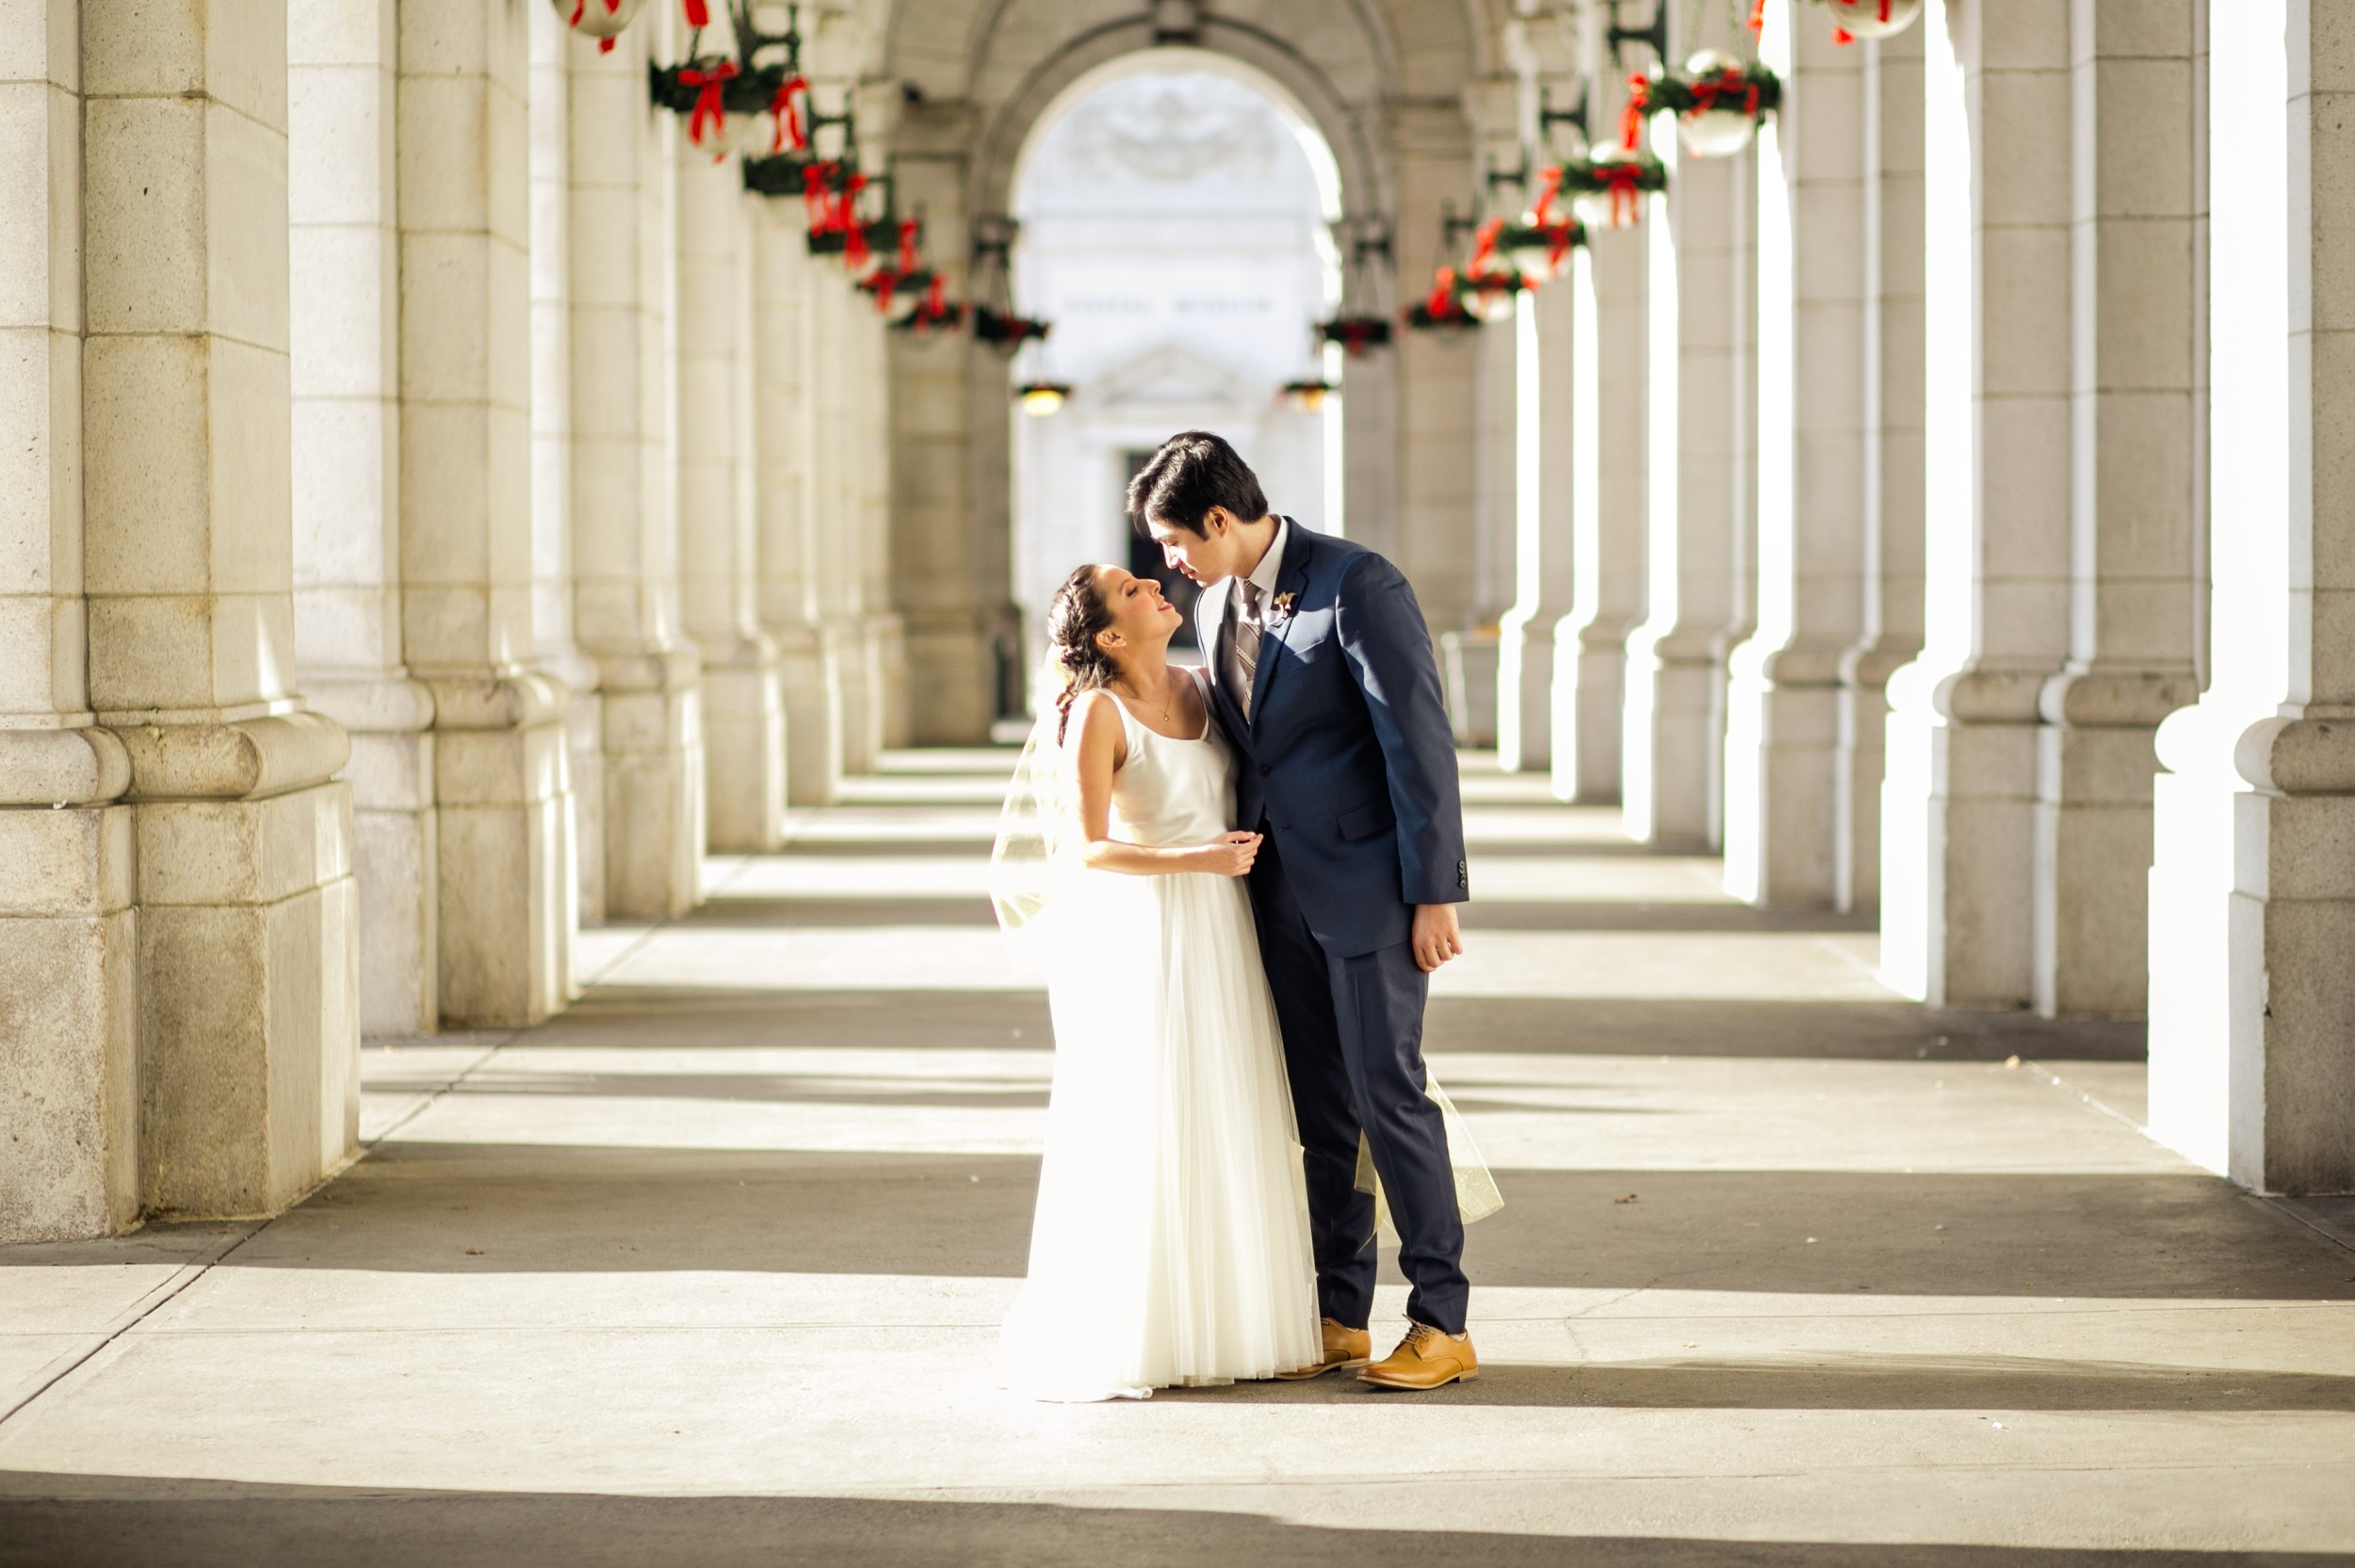 The bride and groom sharing a kiss at Union Station before their wedding in downtown DC and reception at a brewery.